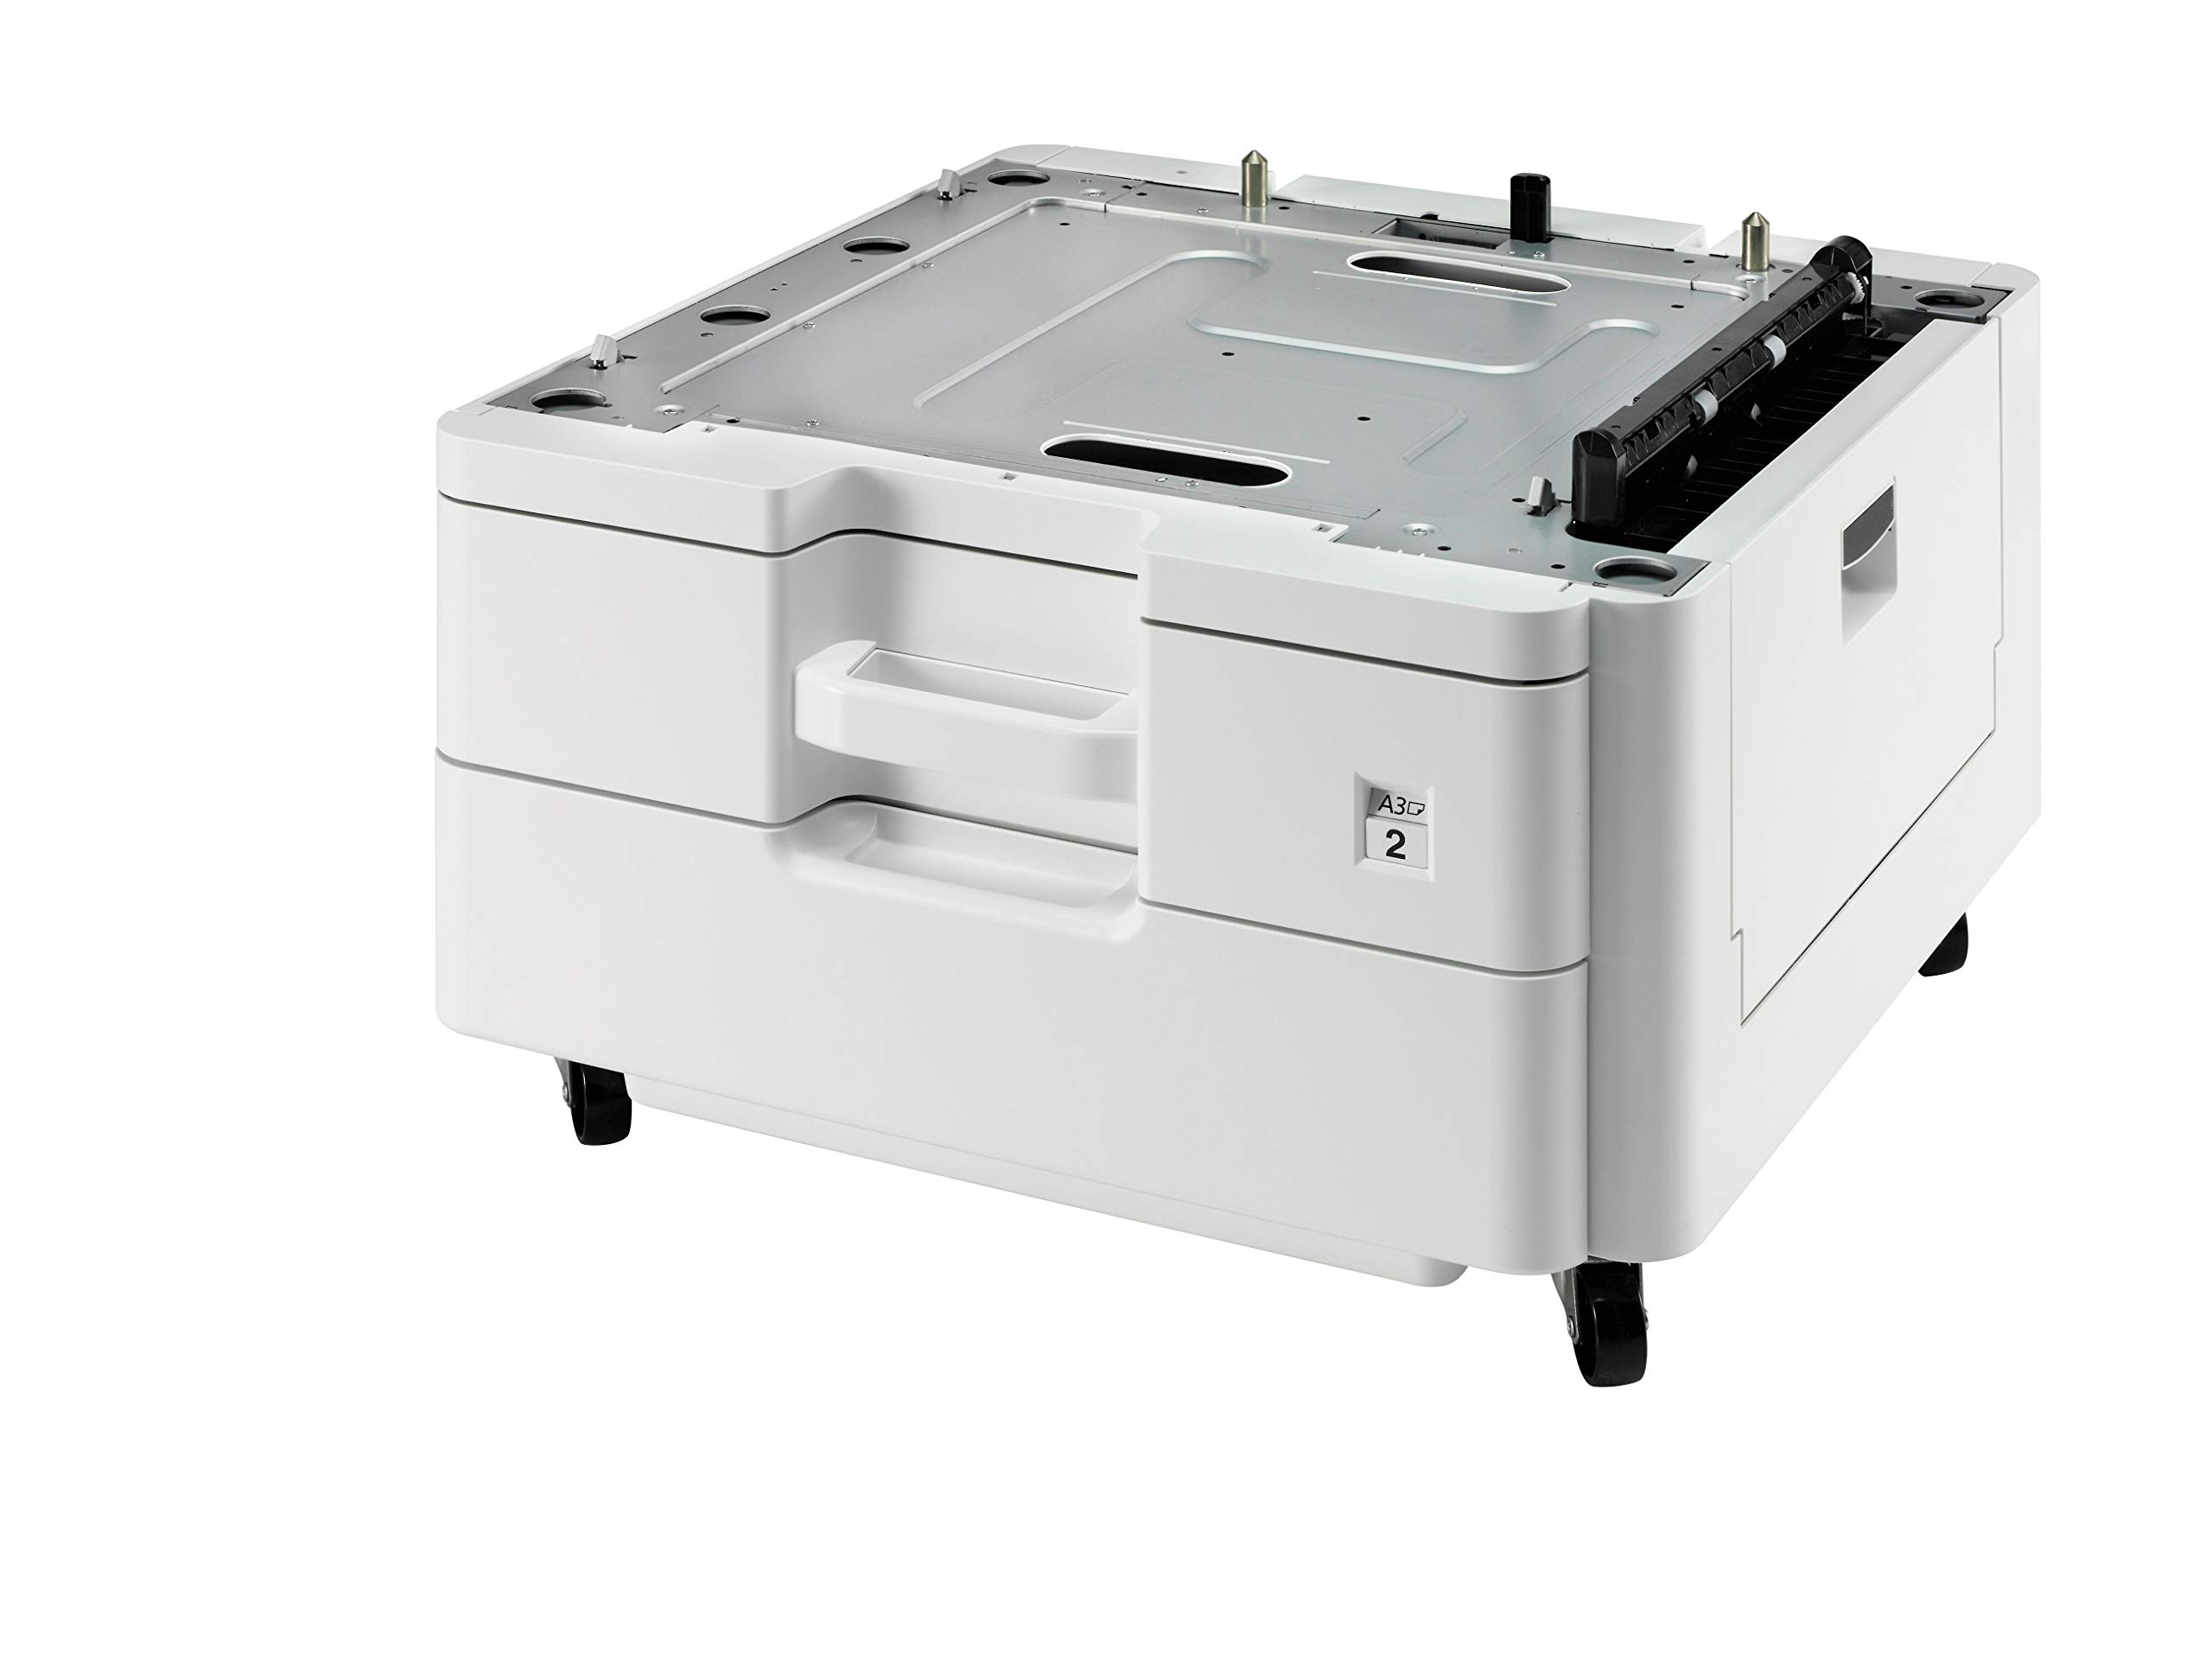 Kyocera 1203NP2US0 Model PF-470 500-Sheet Paper Feeder and Cabinet; For use with FS-C8520MFP, FS-C8525MFP, FS-6525MFP, FS-6530MFP, M4132idn, M4125idn, M8124cidn, M8130cidn and Others Printers by Kyocera